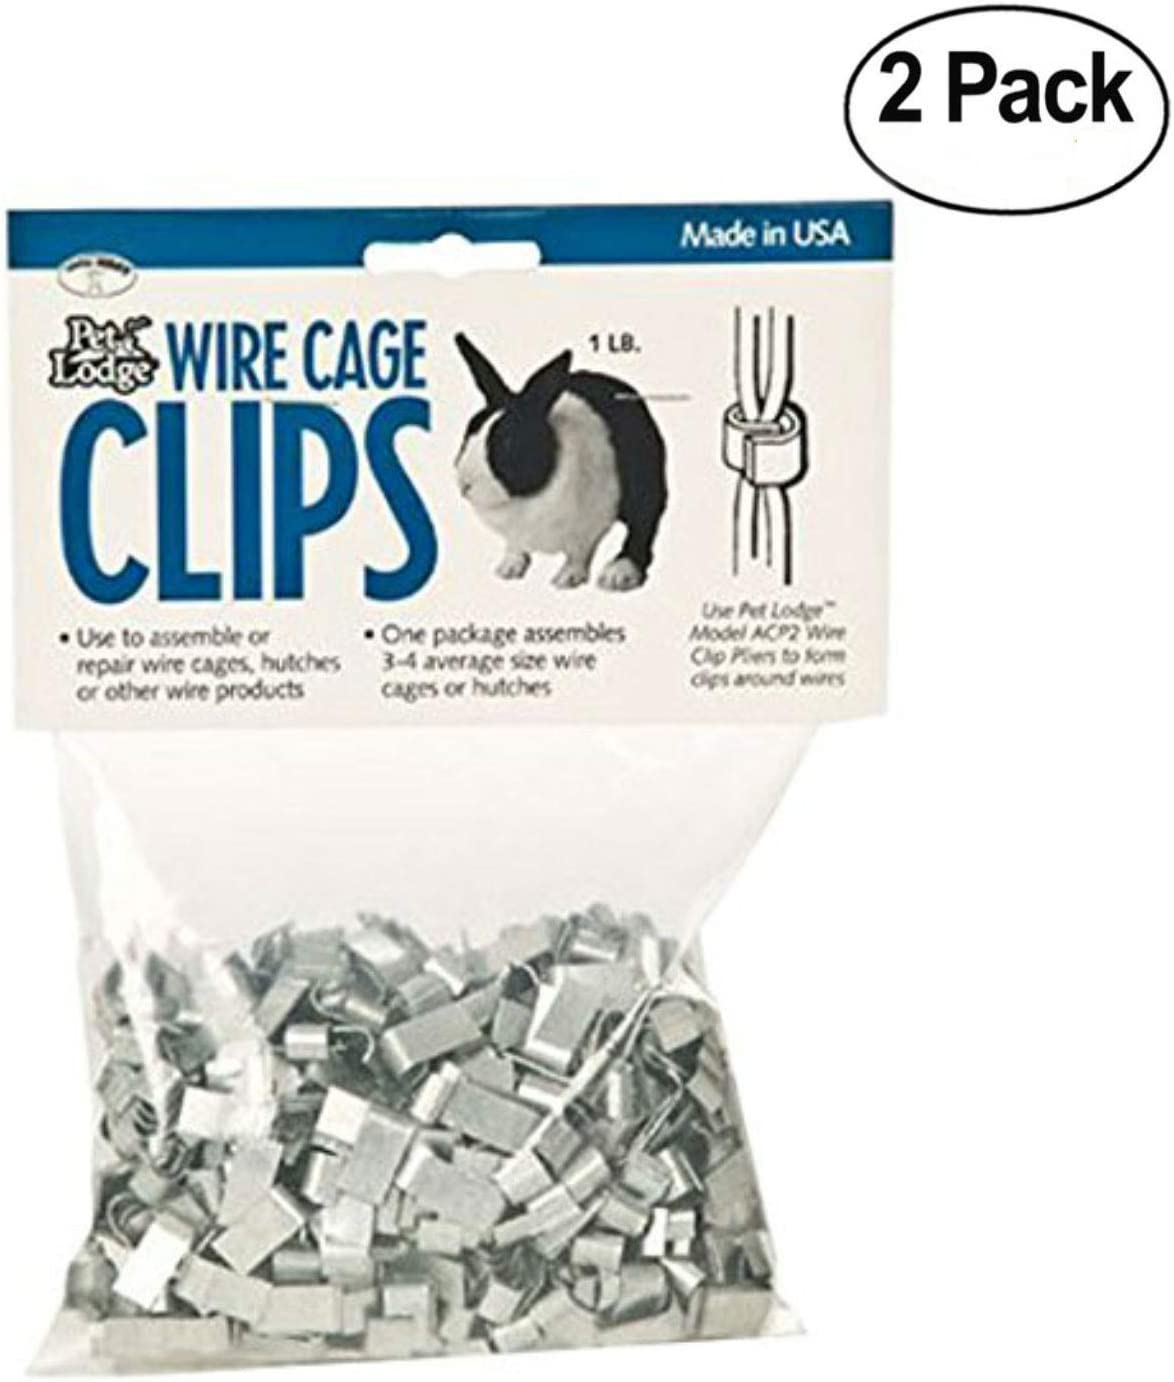 Pack of 2 Pack of 2 Miller Manufacturing ACC1 Wire Cage Clips